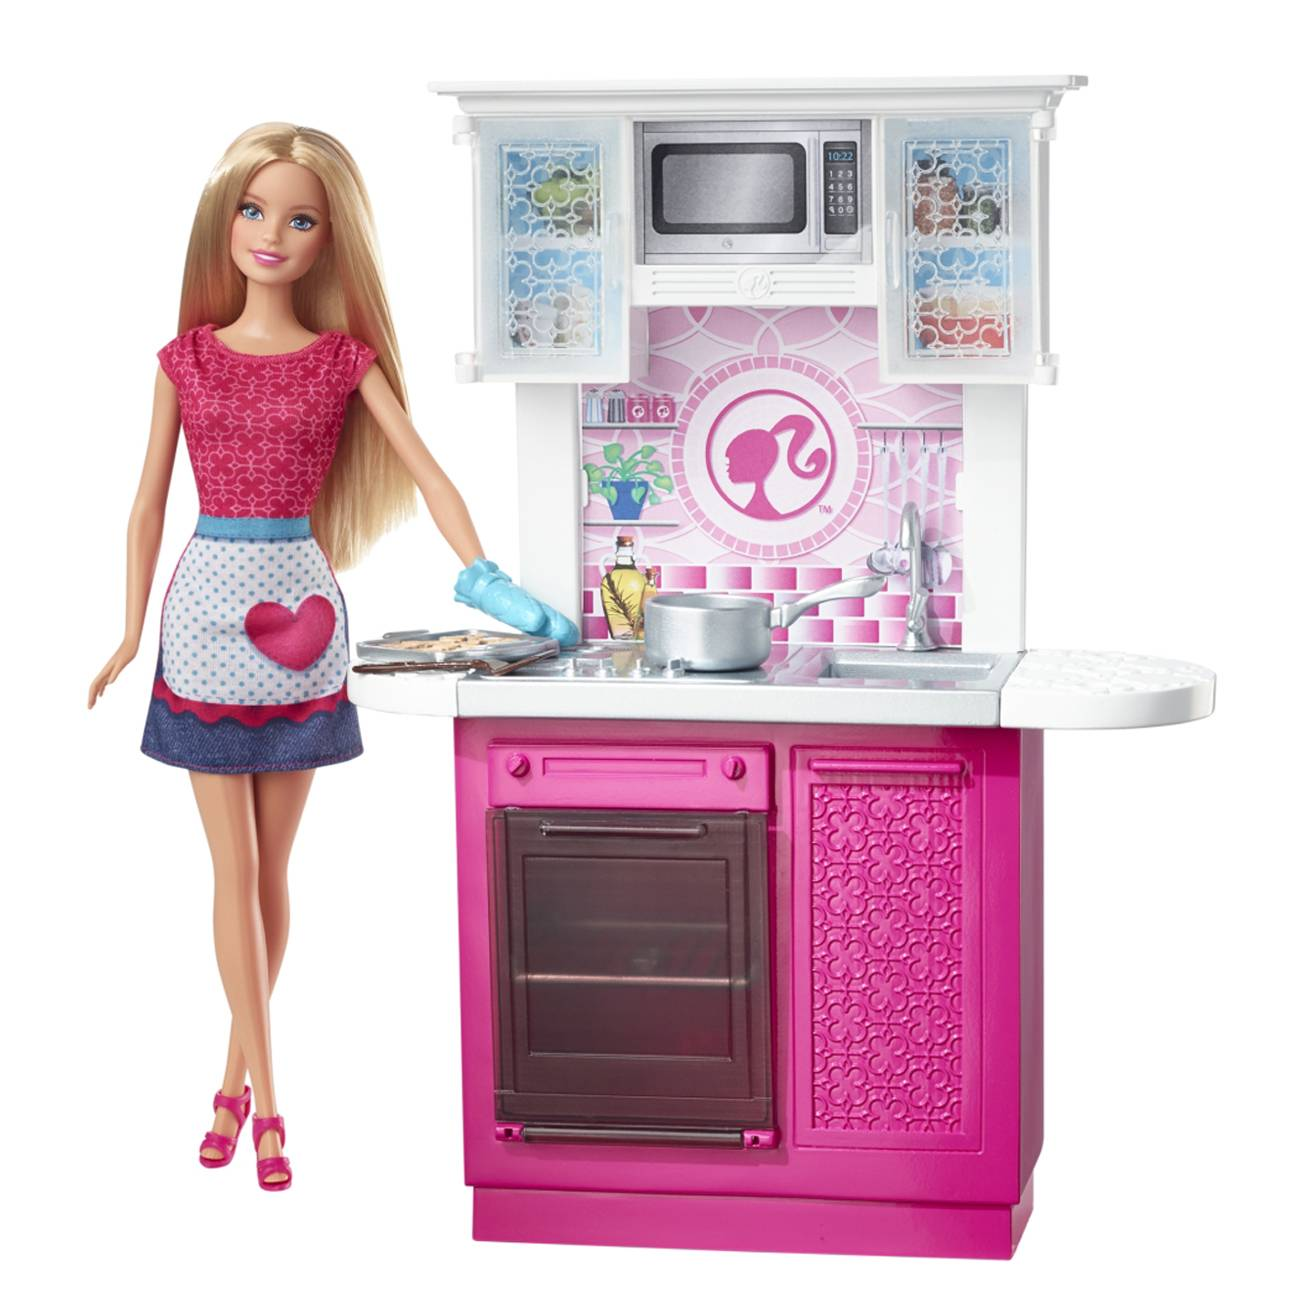 DOLL AND DELUXE KITCHEN